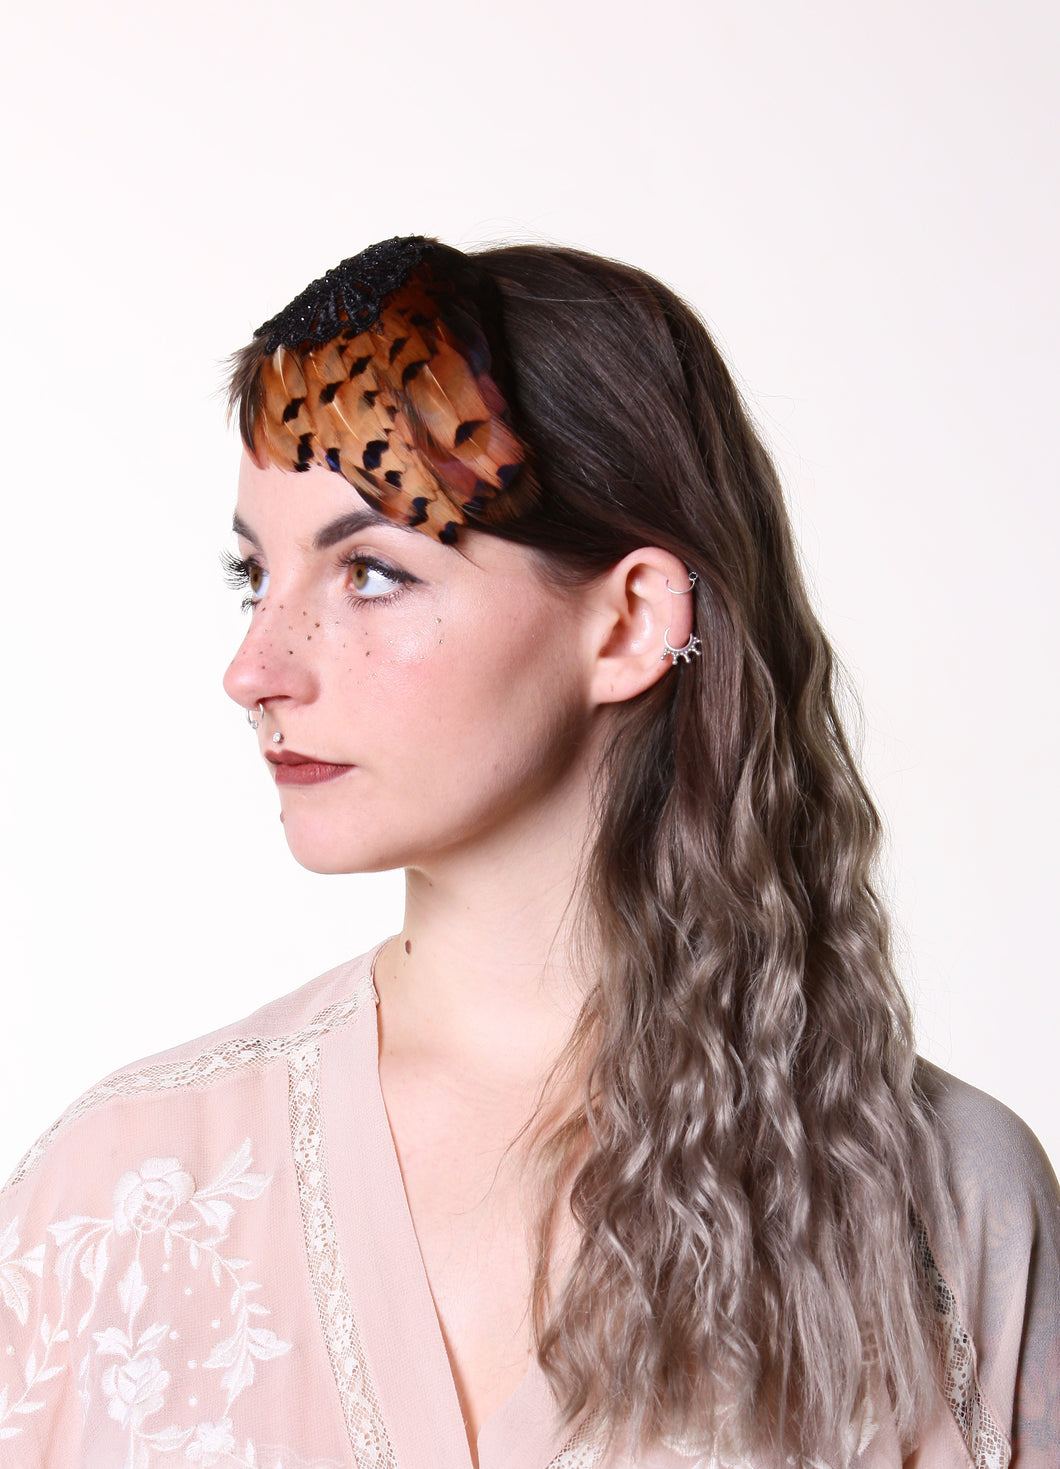 In Full Plume Amber feathered headpiece, fascinator or statement hair accessory